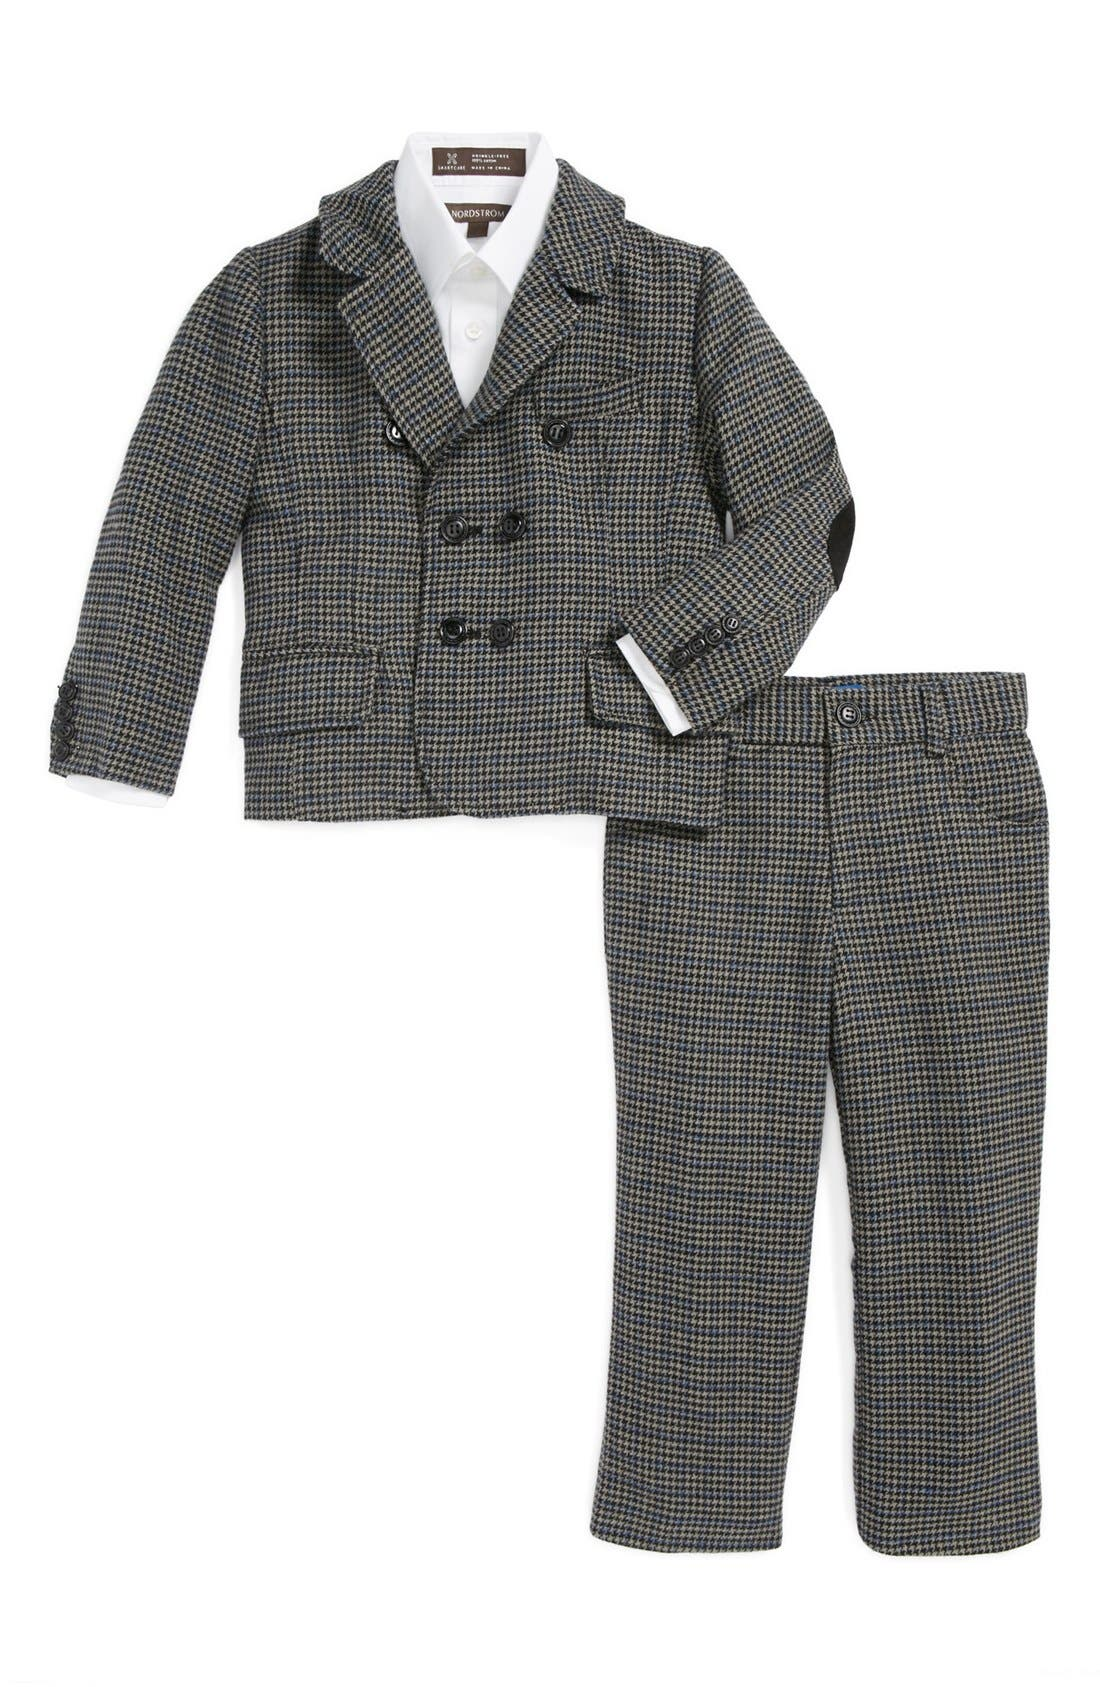 Main Image - Andy & Evan for little gentlemen Two-Piece Wool Suit (Toddler Boys)